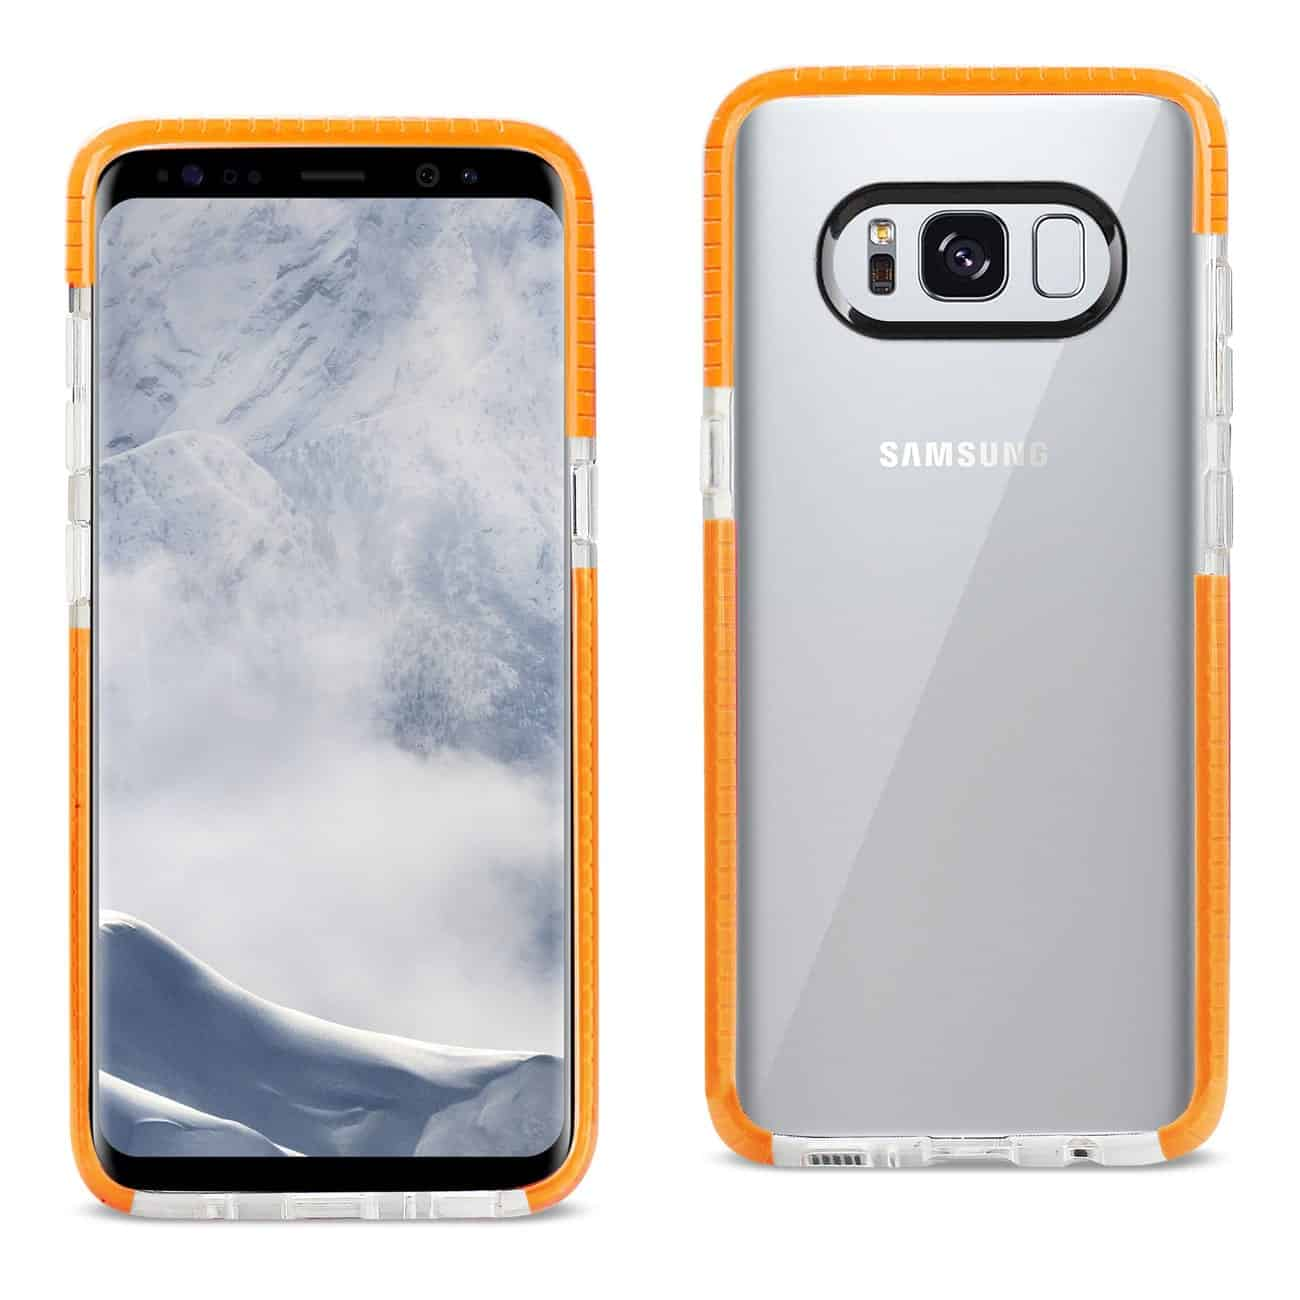 SAMSUNG GALAXY S8 EDGE/ S8 PLUS SOFT TRANSPARENT TPU CASE IN CLEAR ORANGE